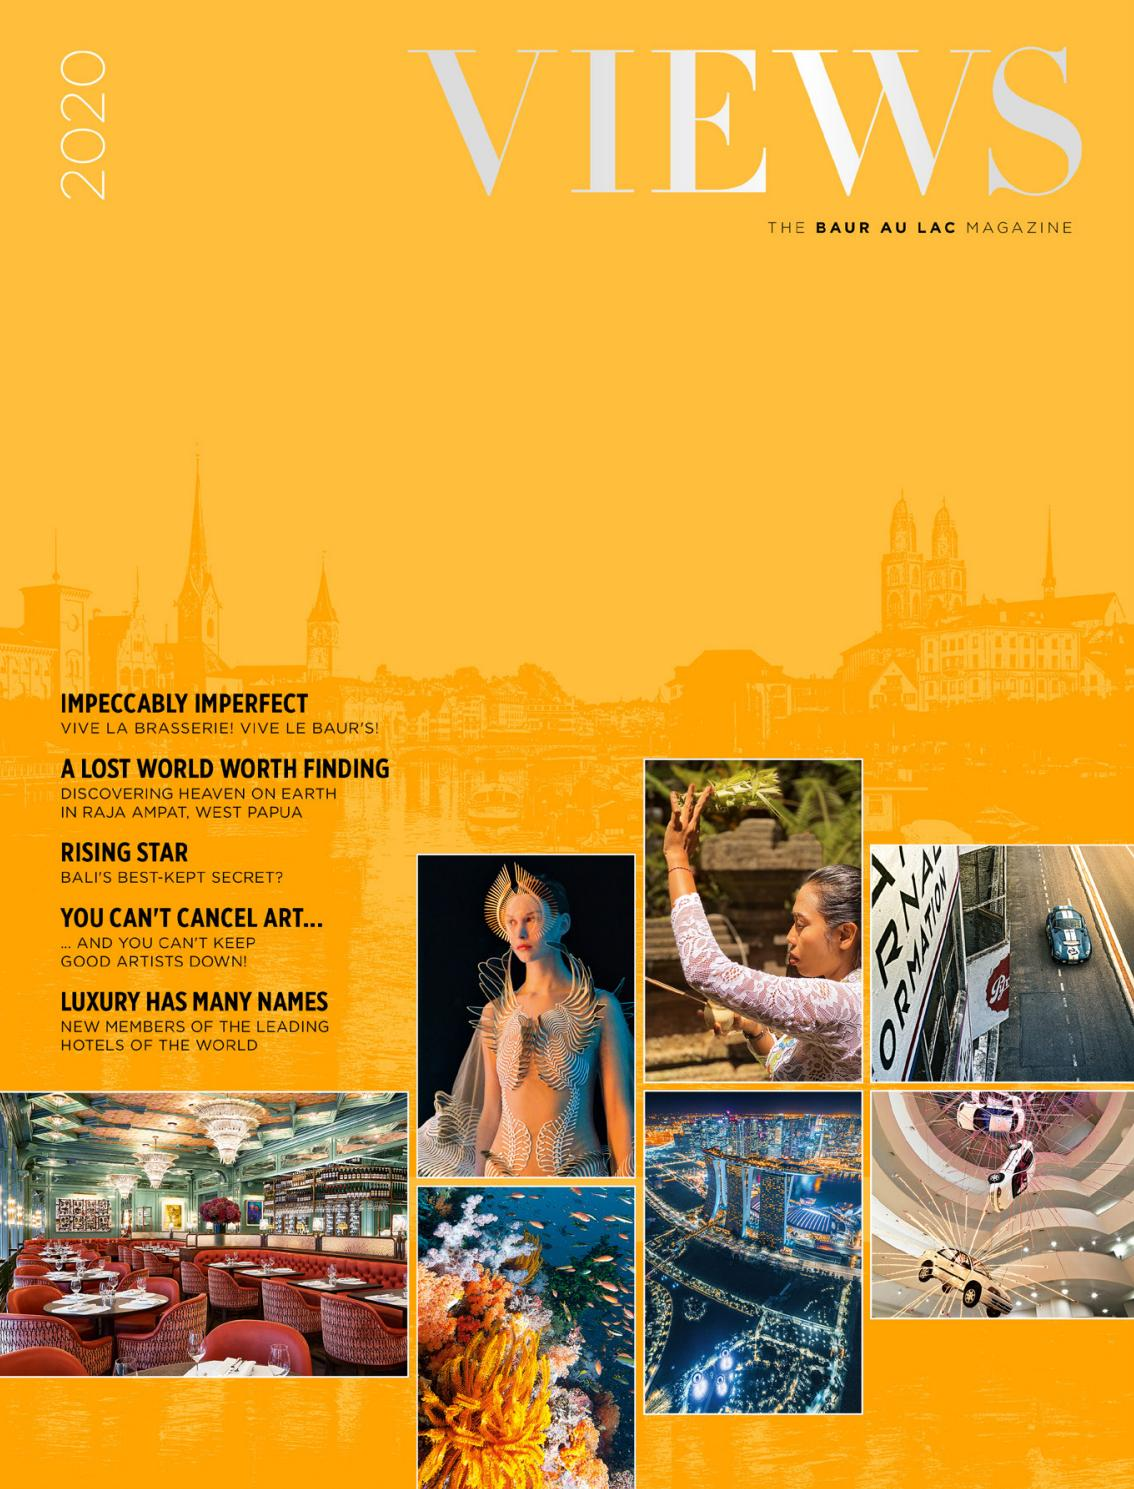 Views The Baur Au Lac Magazine Edition 2020 By Baur Au Lac Issuu